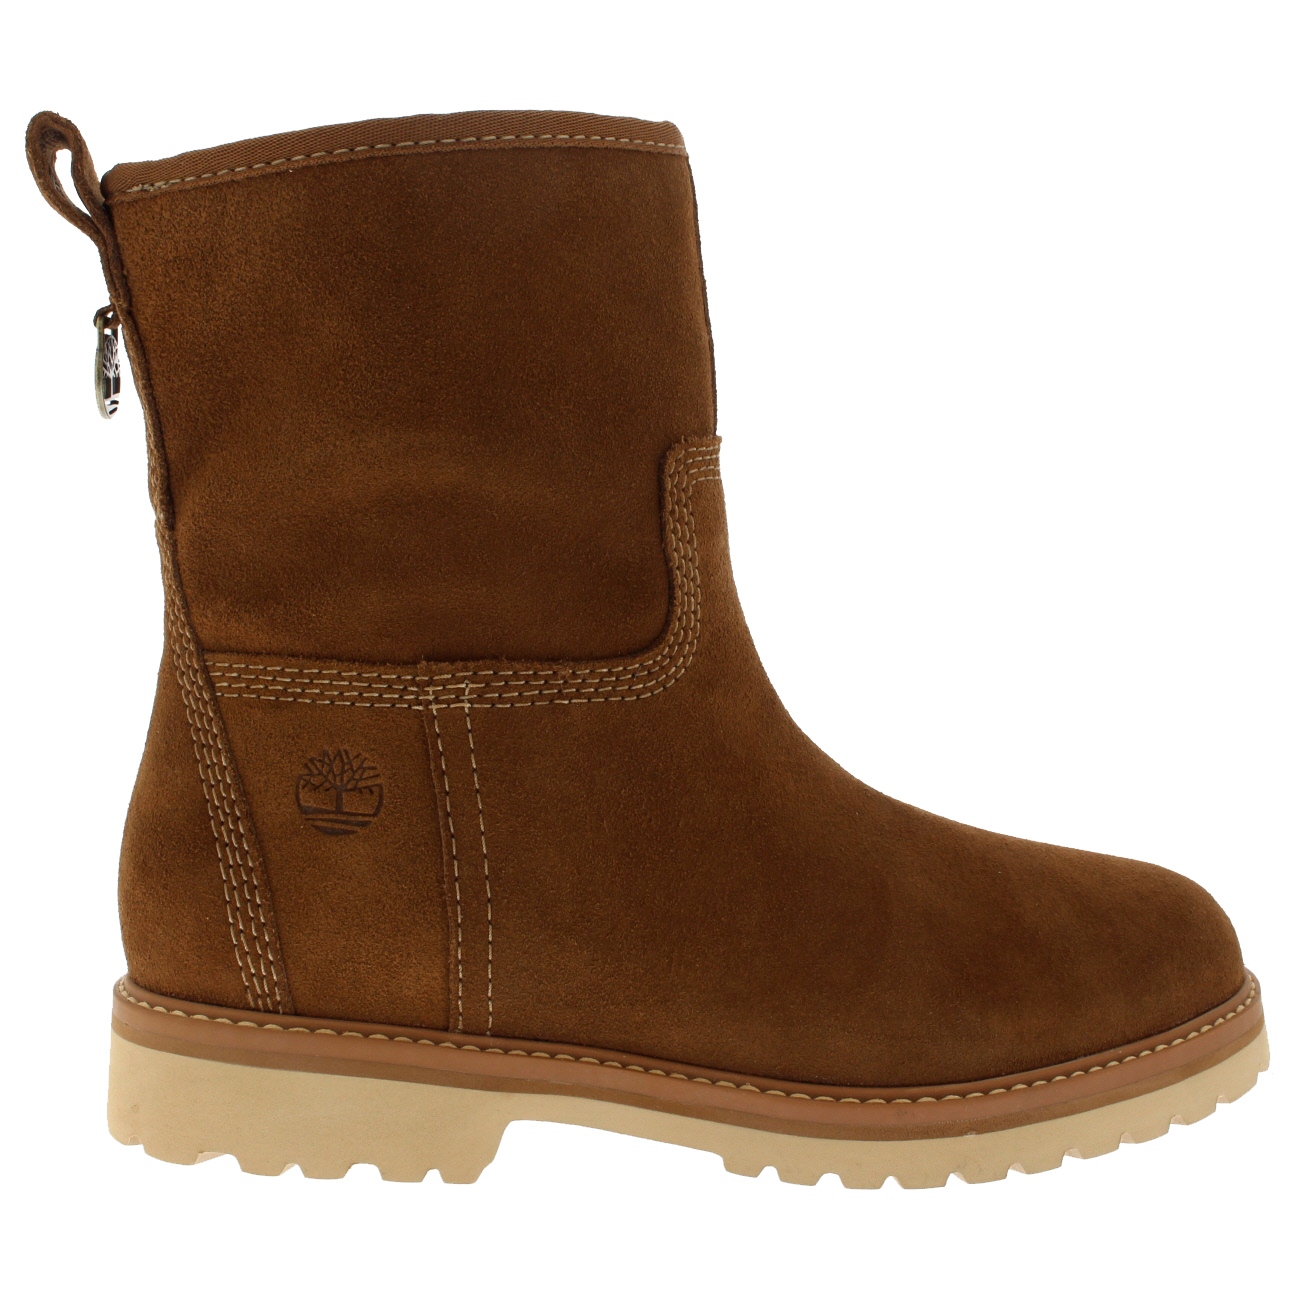 f52595d7c34c Womens Timberland Chamonix Valley Winter Boot Waterproof Suede Calf ...